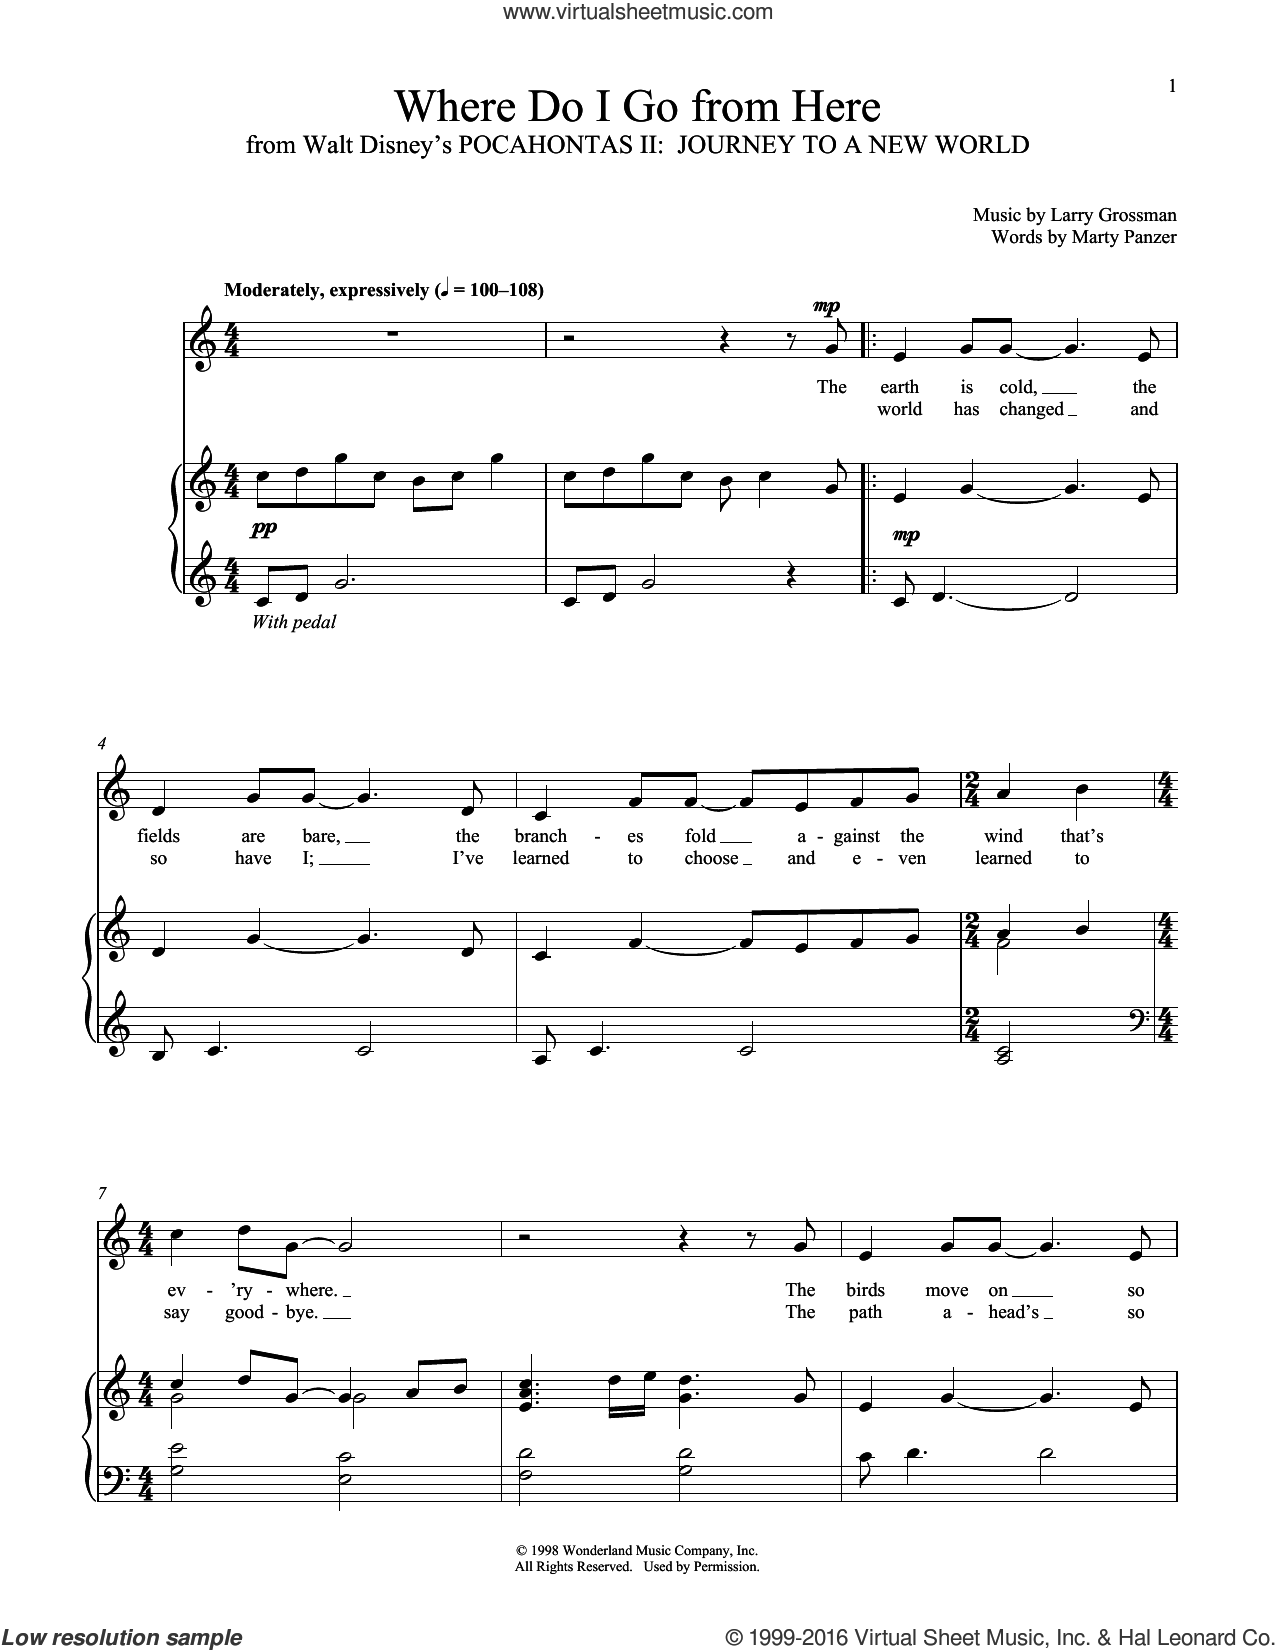 Where Do I Go From Here sheet music for voice and piano by Larry Grossman and Marty Panzer, intermediate skill level